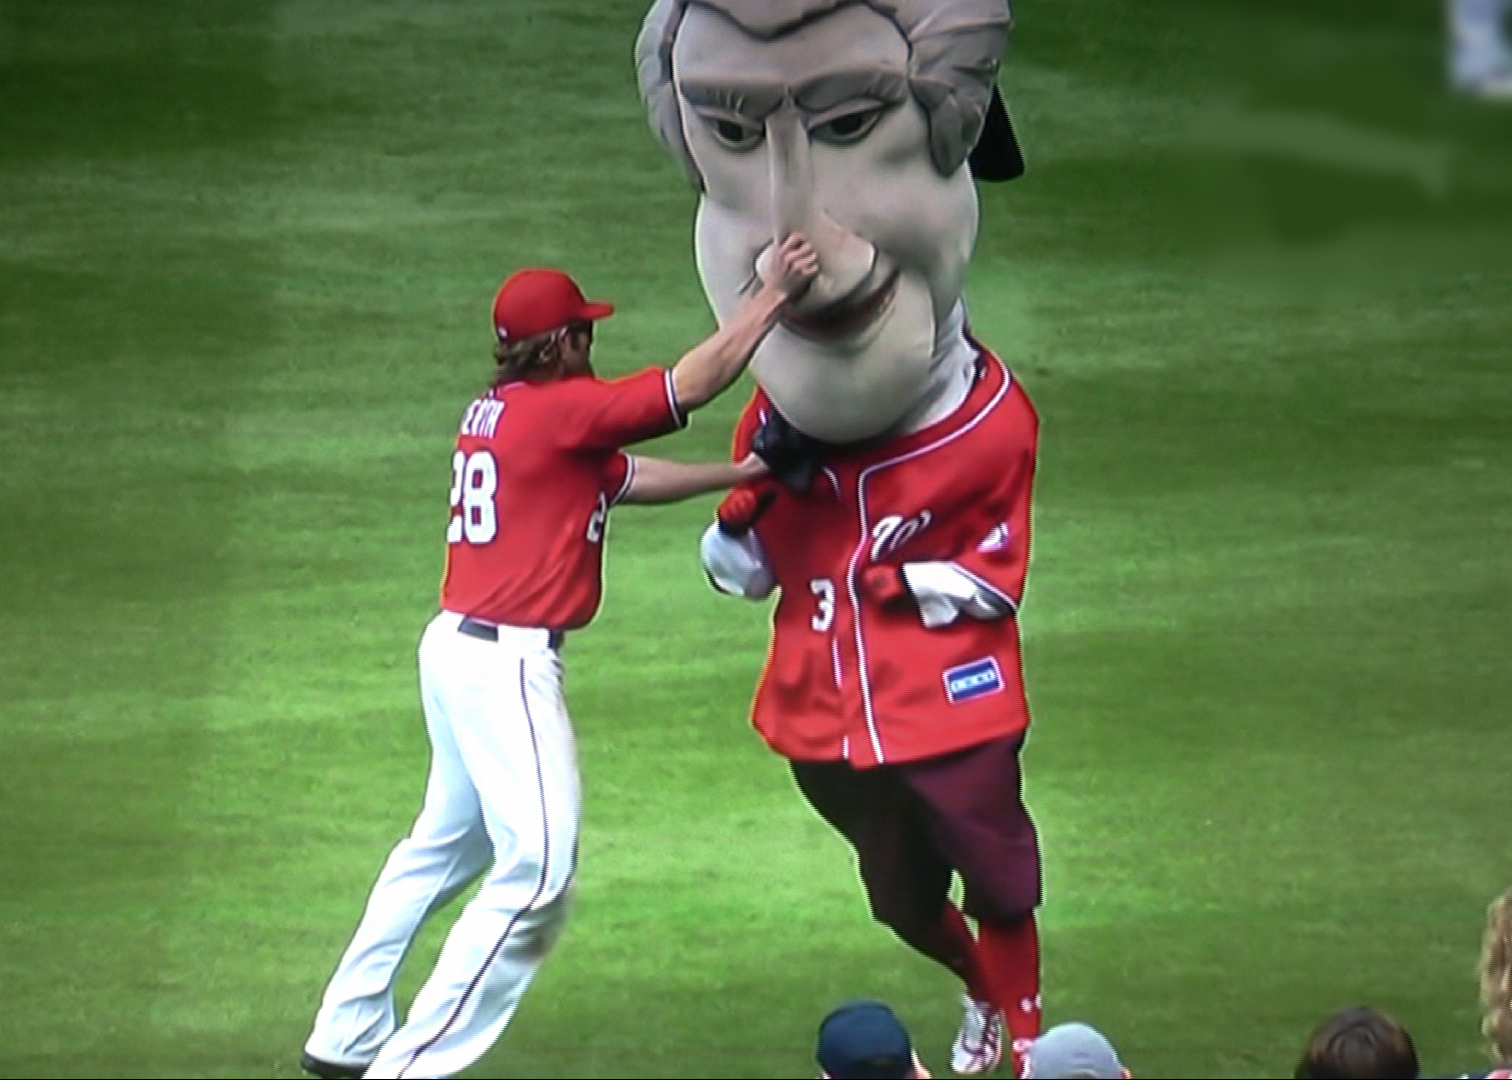 Video presidents race chaos as jayson werth takes the tape let